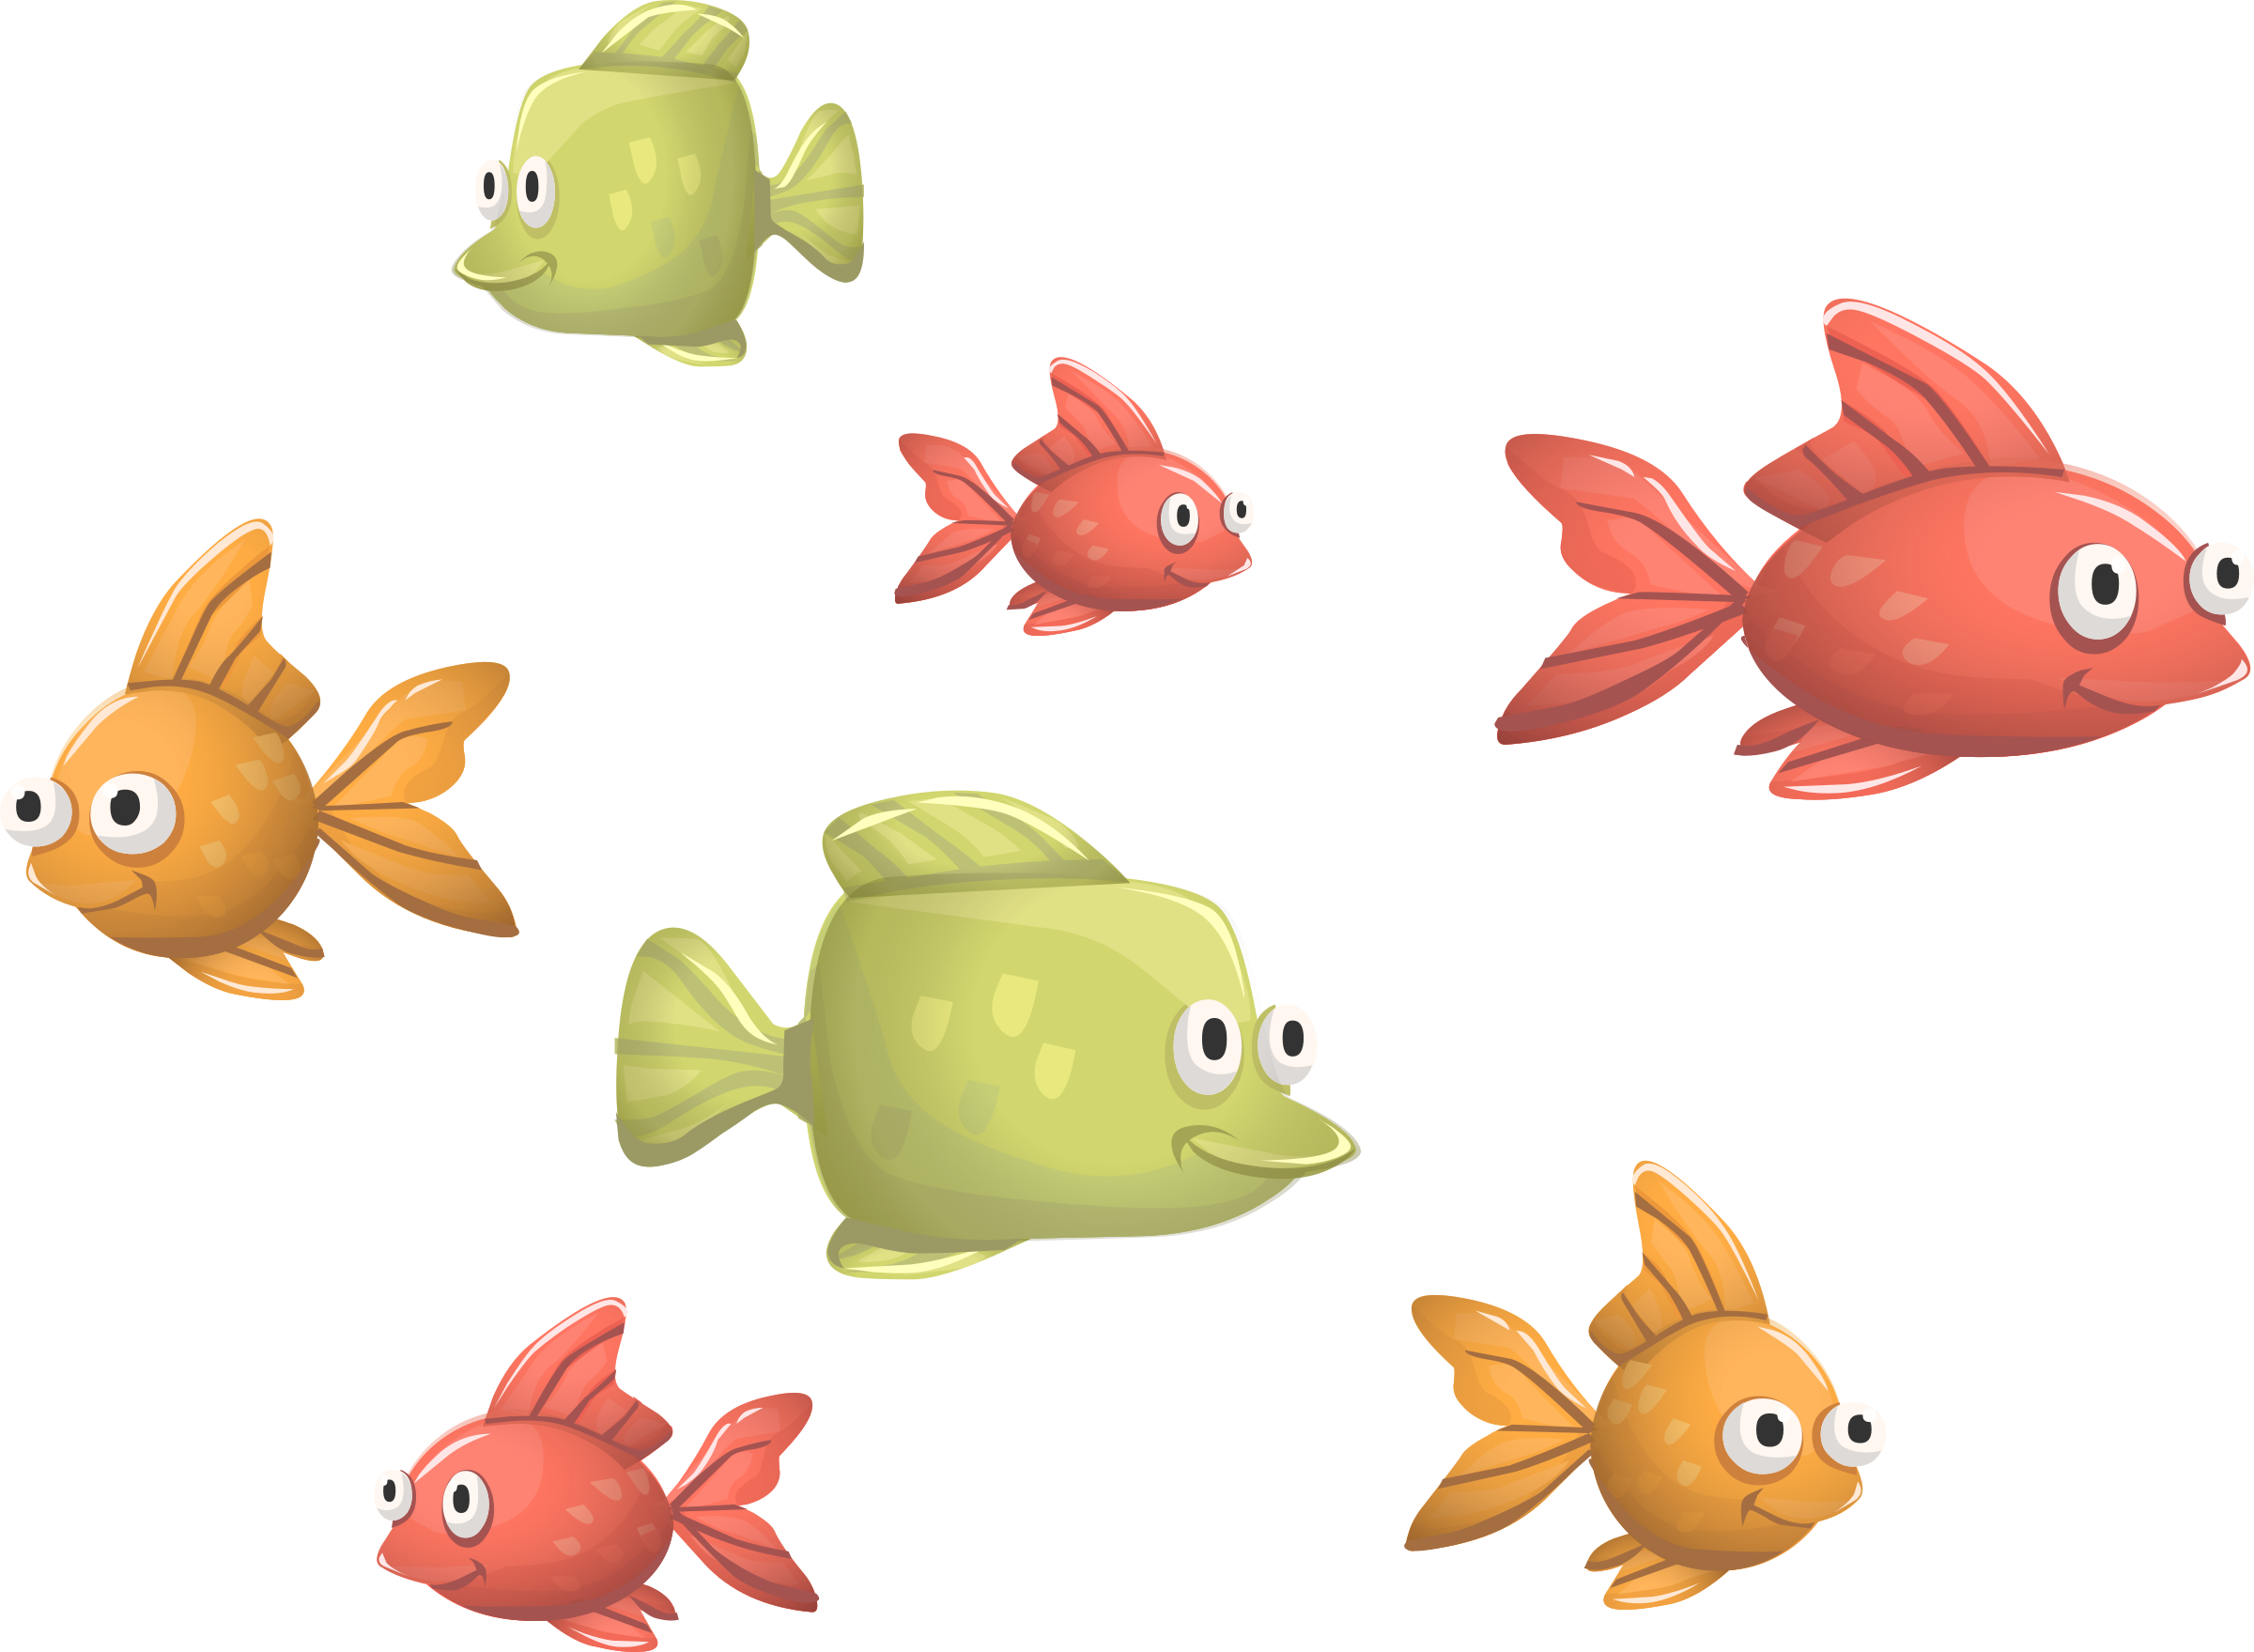 Clipart small fish jpg free Clipart From Glitch Big Image Png - Small Fish Clip Art ... jpg free